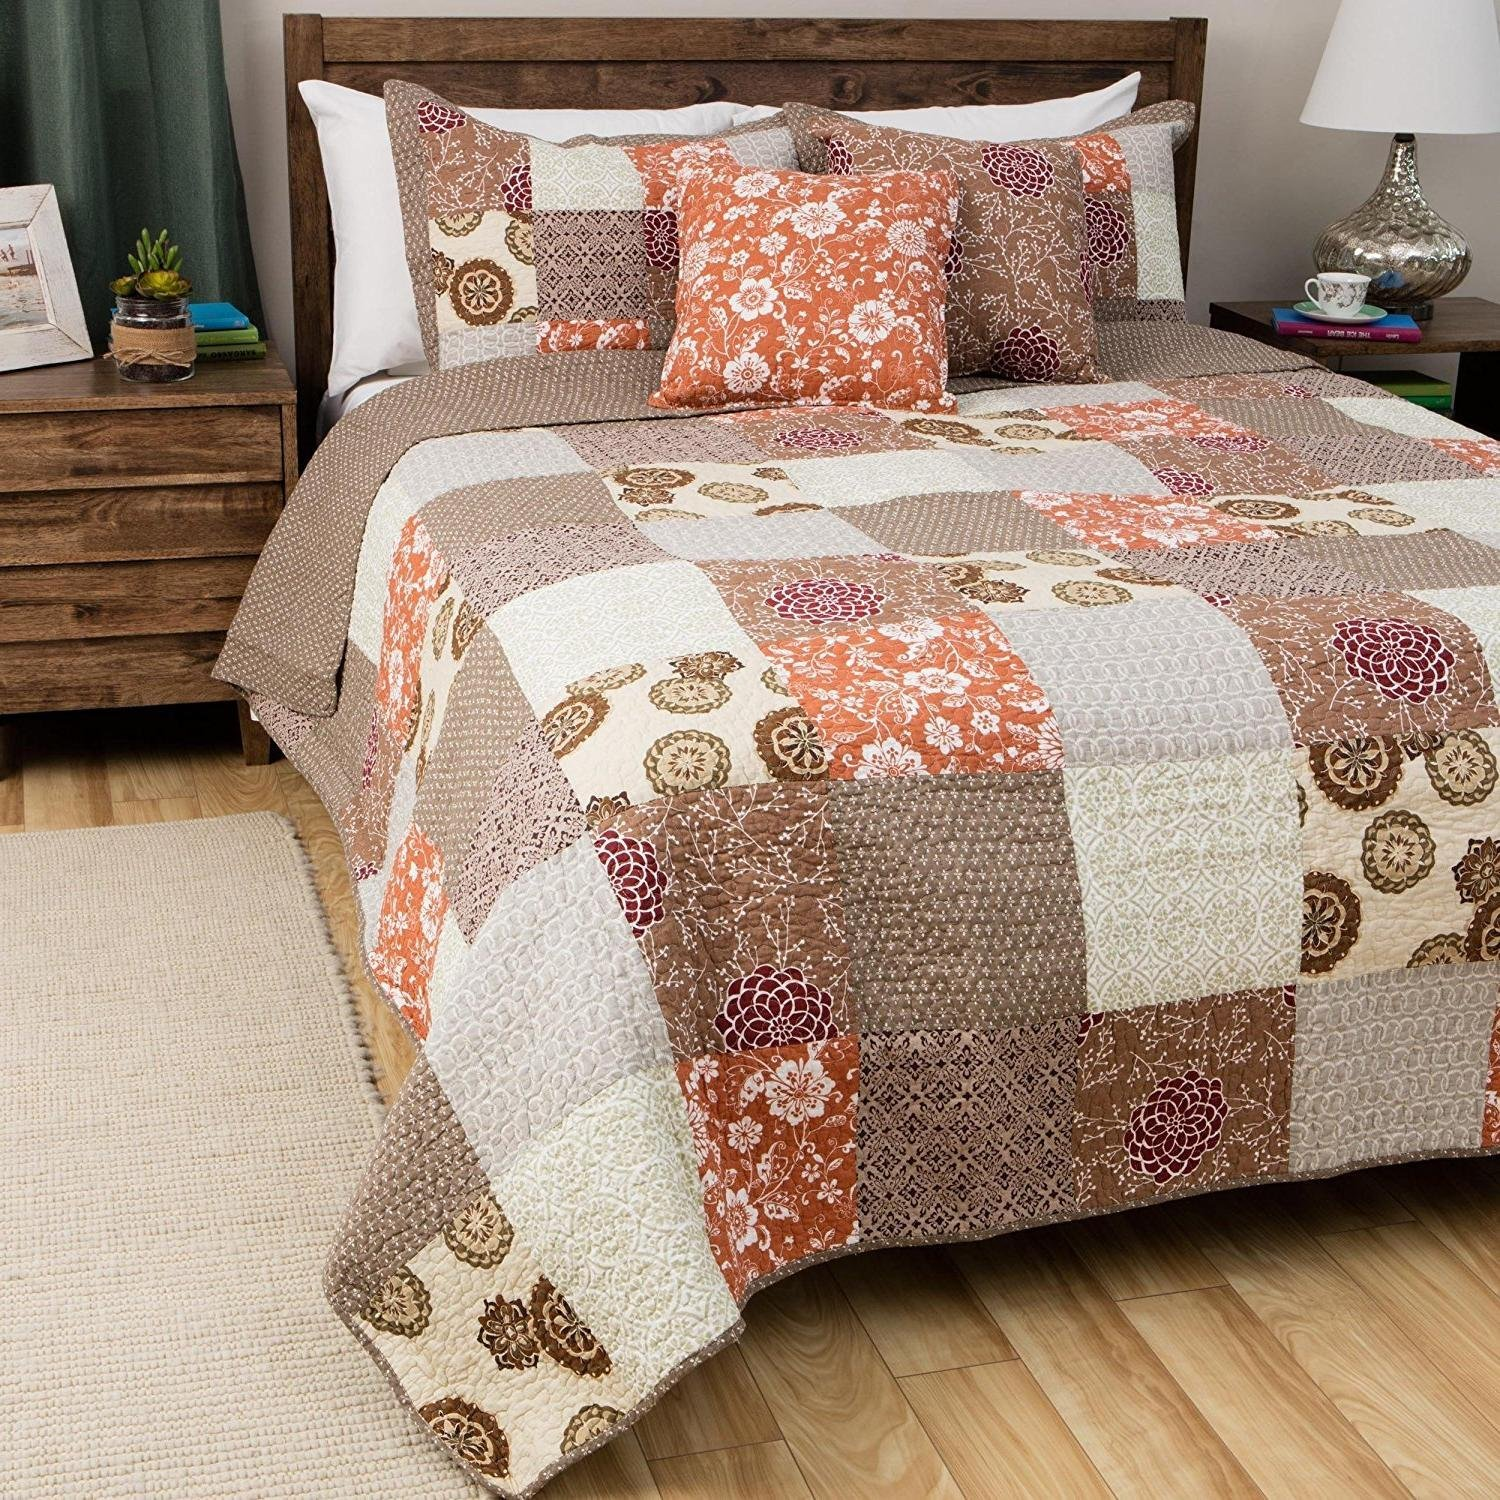 MISC 2pc Grey Floral Twin Size Patchwork Quilt, Brown Burgundy Spring Green Gray Geomectric Flowers, Synthetic Fiber, Flower Medallion Geometrical Traditional, Cottage Country Lake House, Cotton